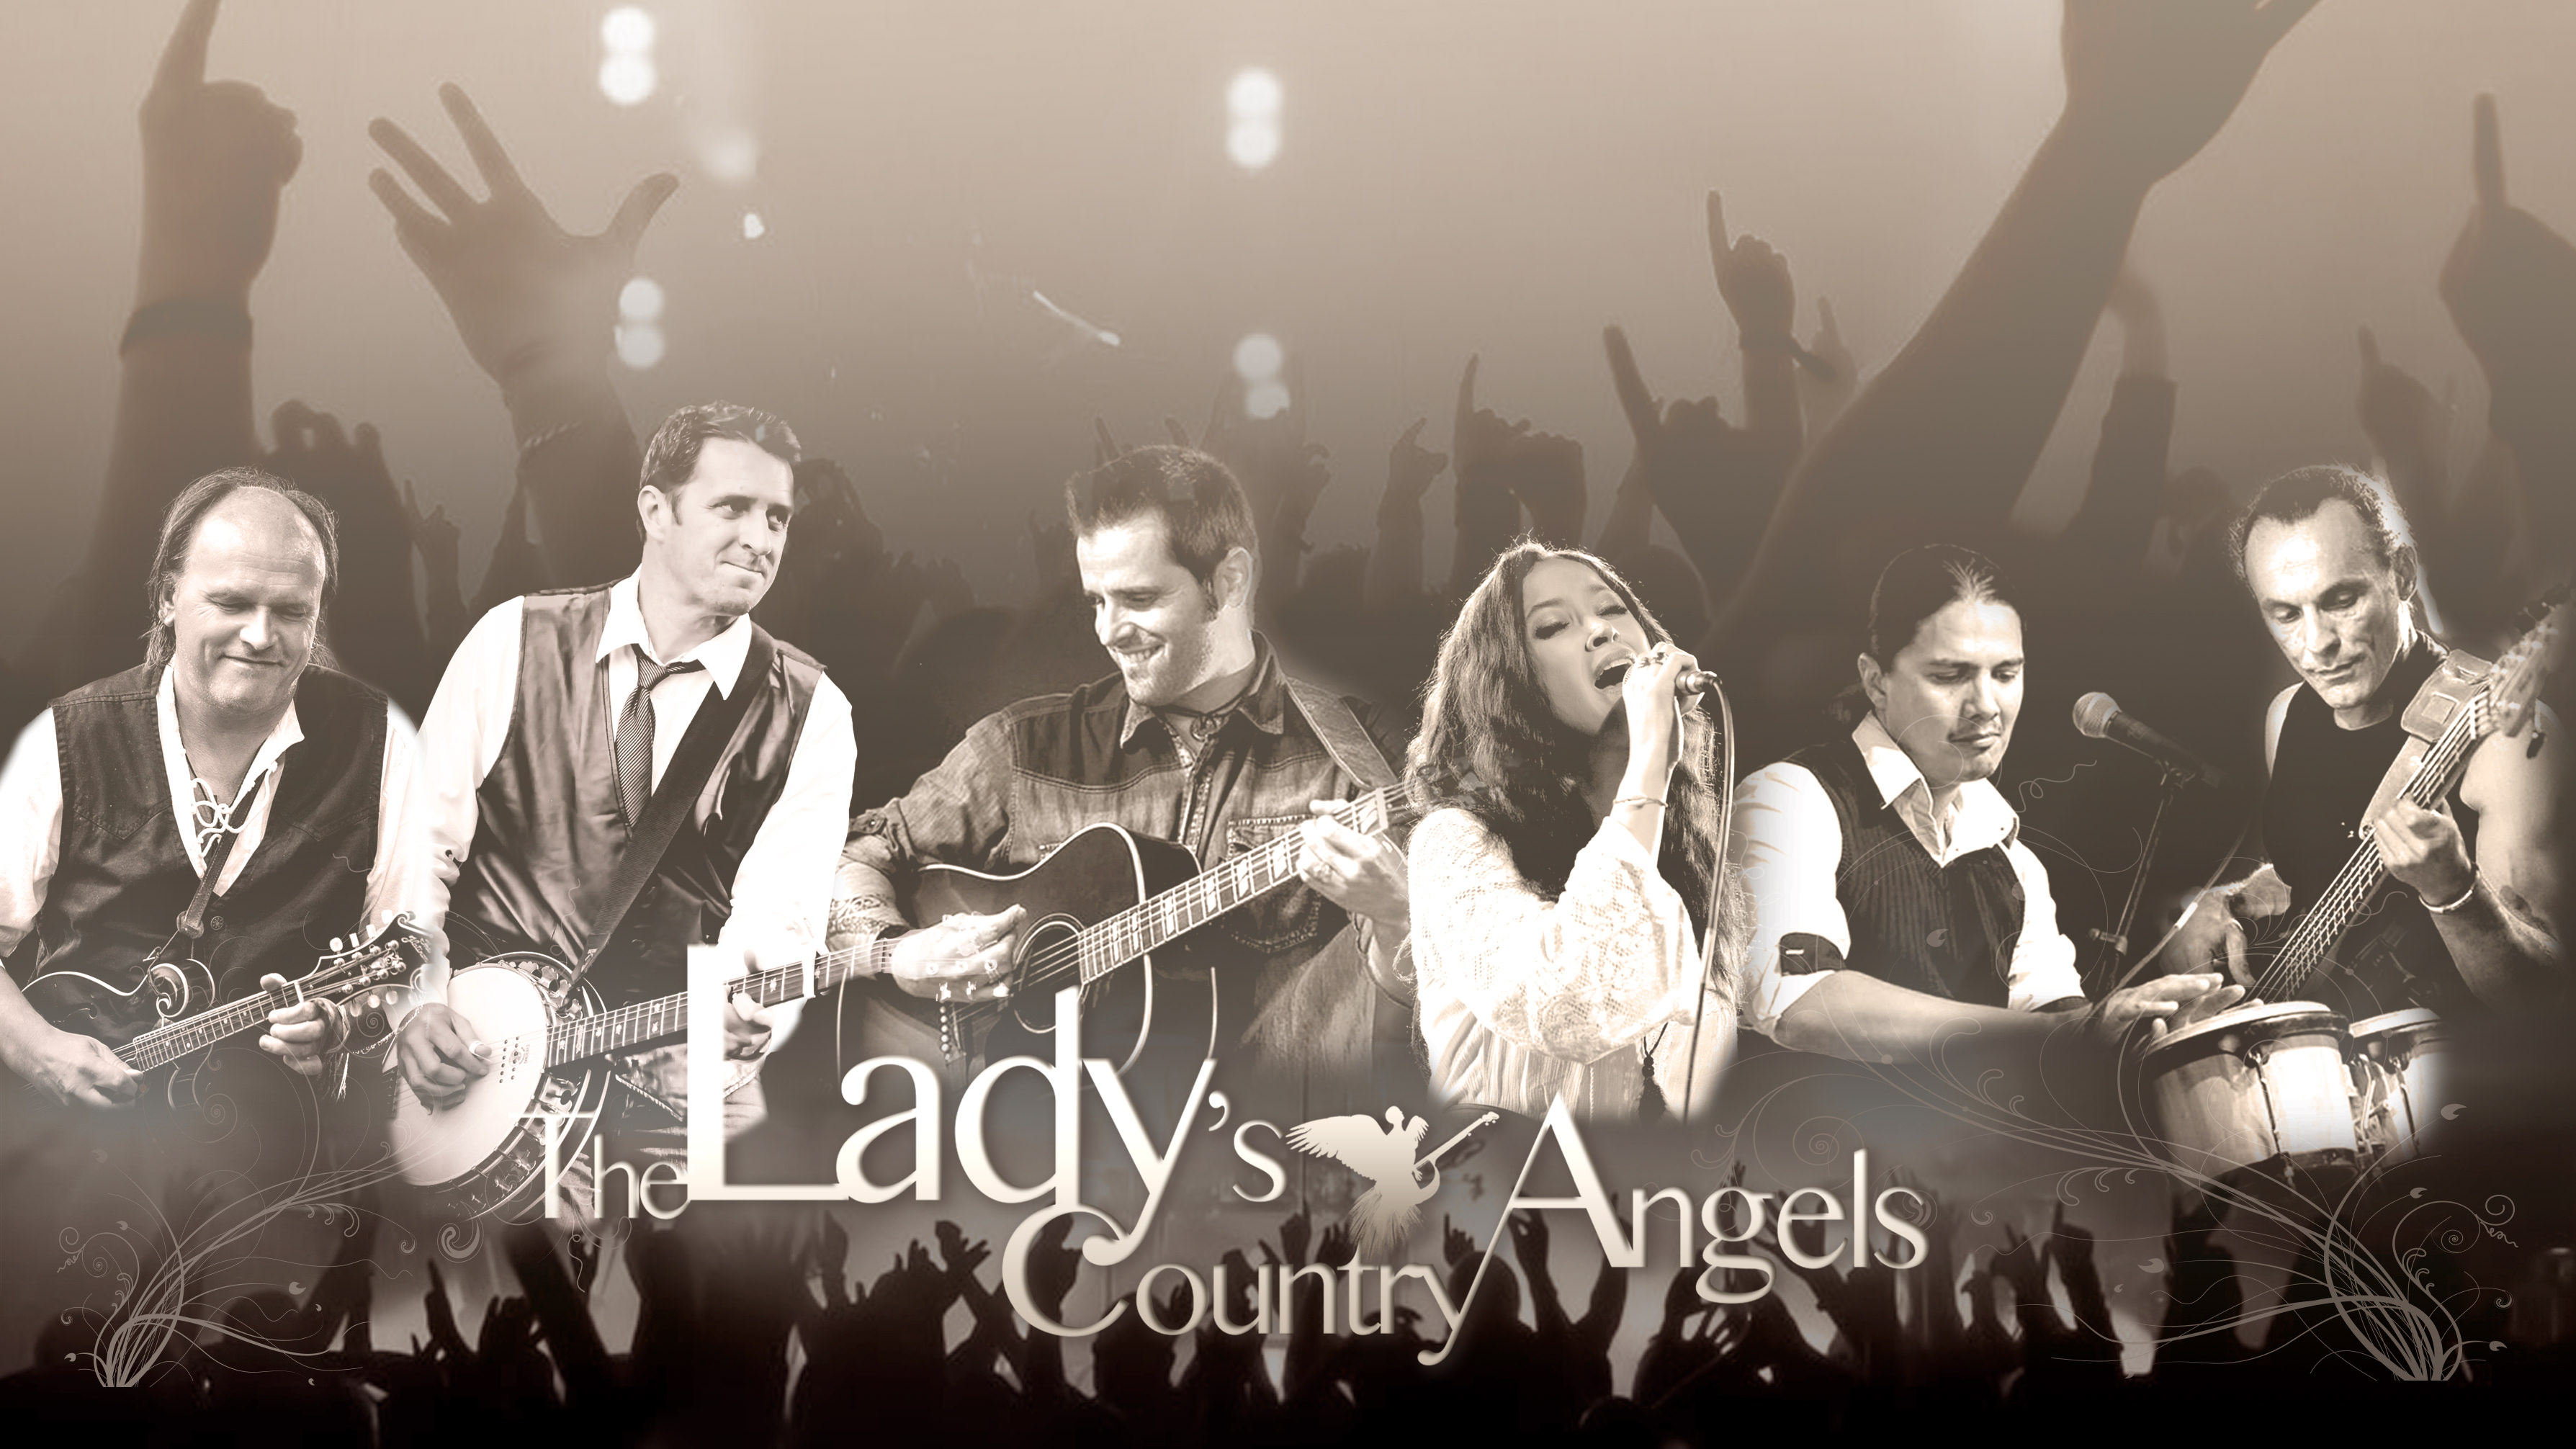 Lady's country angels